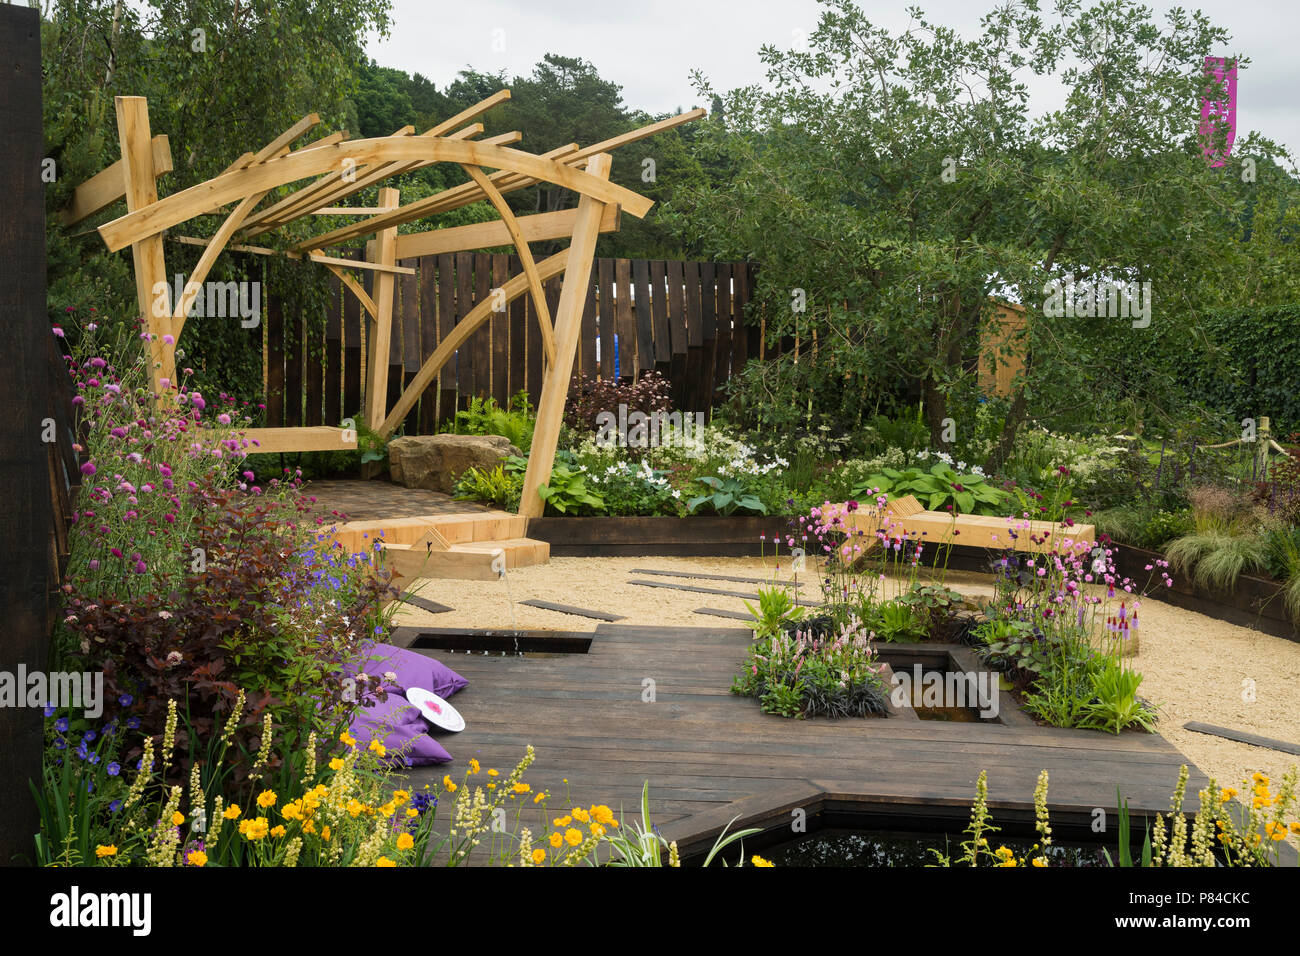 bunte blumen holz pergola bank teich im sch nen preisgekr nte zeigen garten gro artige. Black Bedroom Furniture Sets. Home Design Ideas